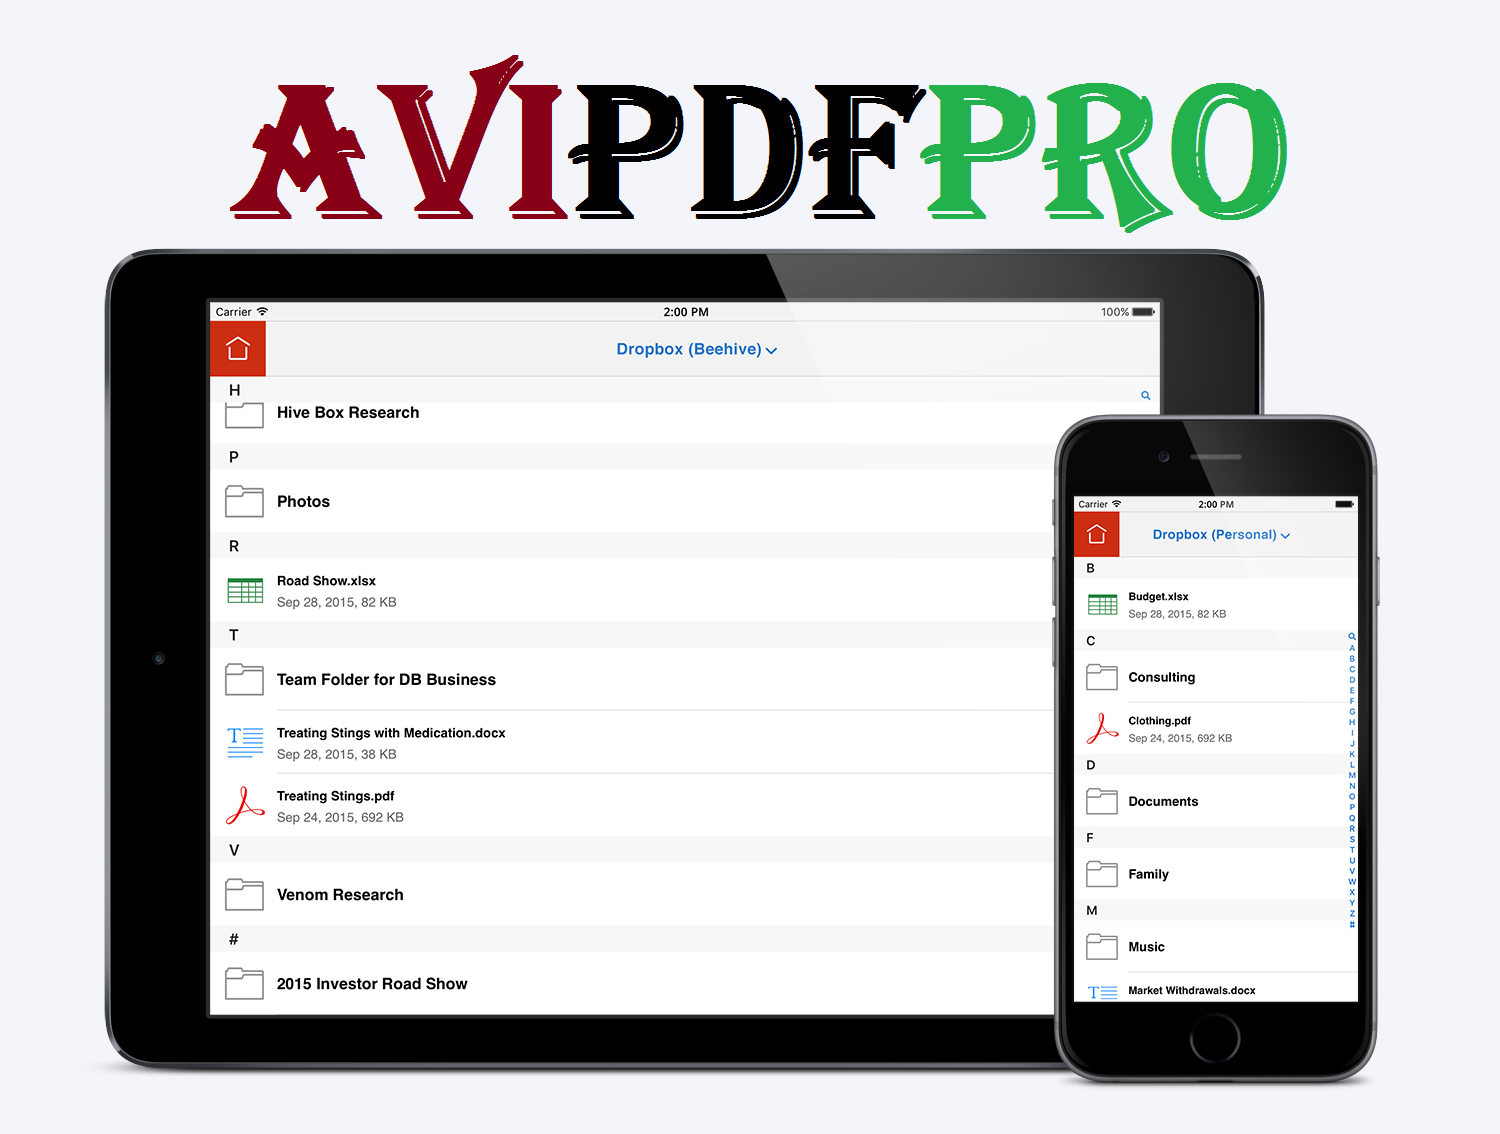 AVIPDFPRO Easy apps, Pdf, Consulting business